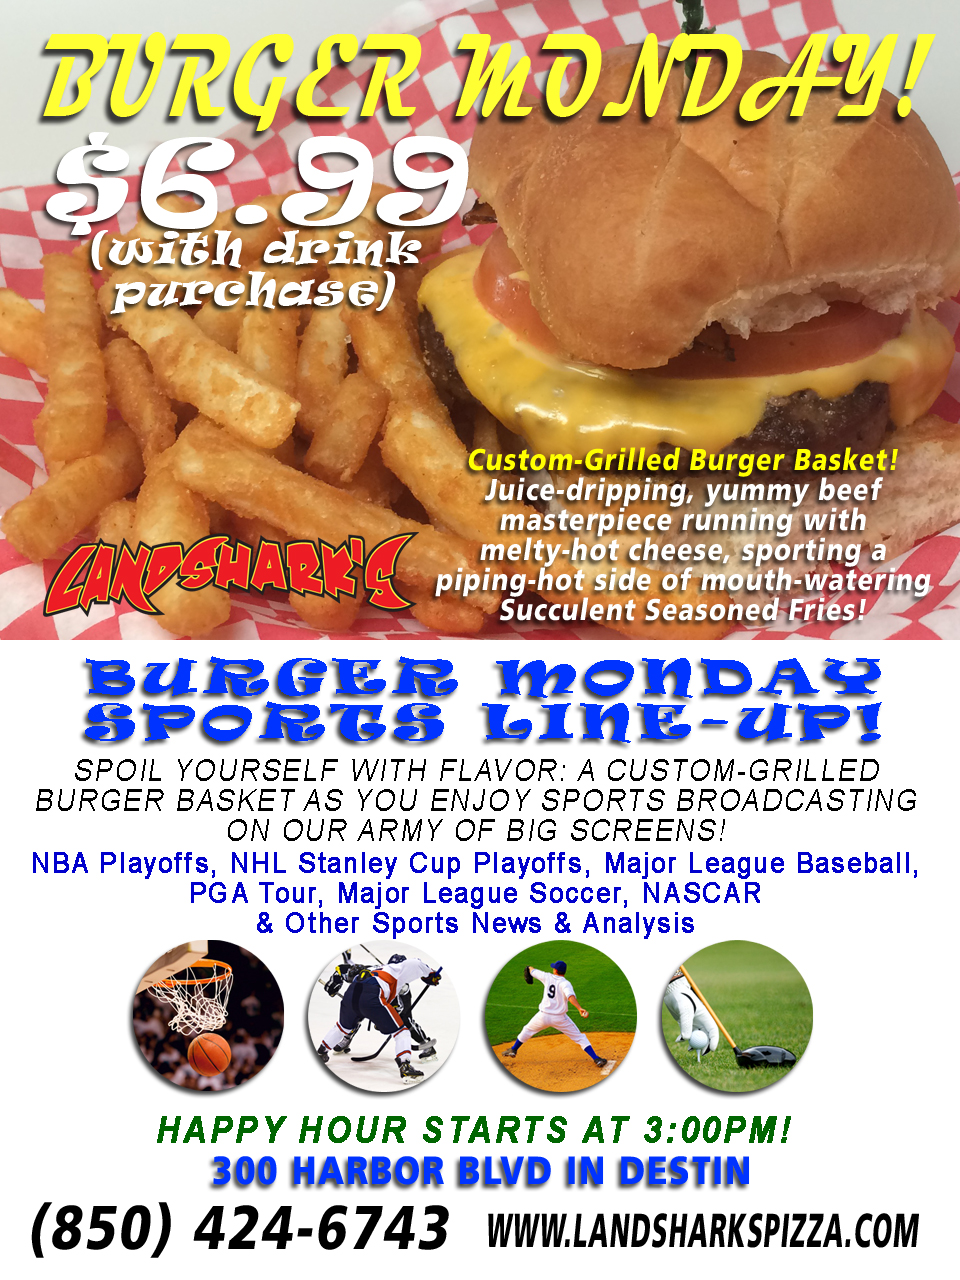 Best Burgers in Destin FL at Landsharks Burger Monday Special